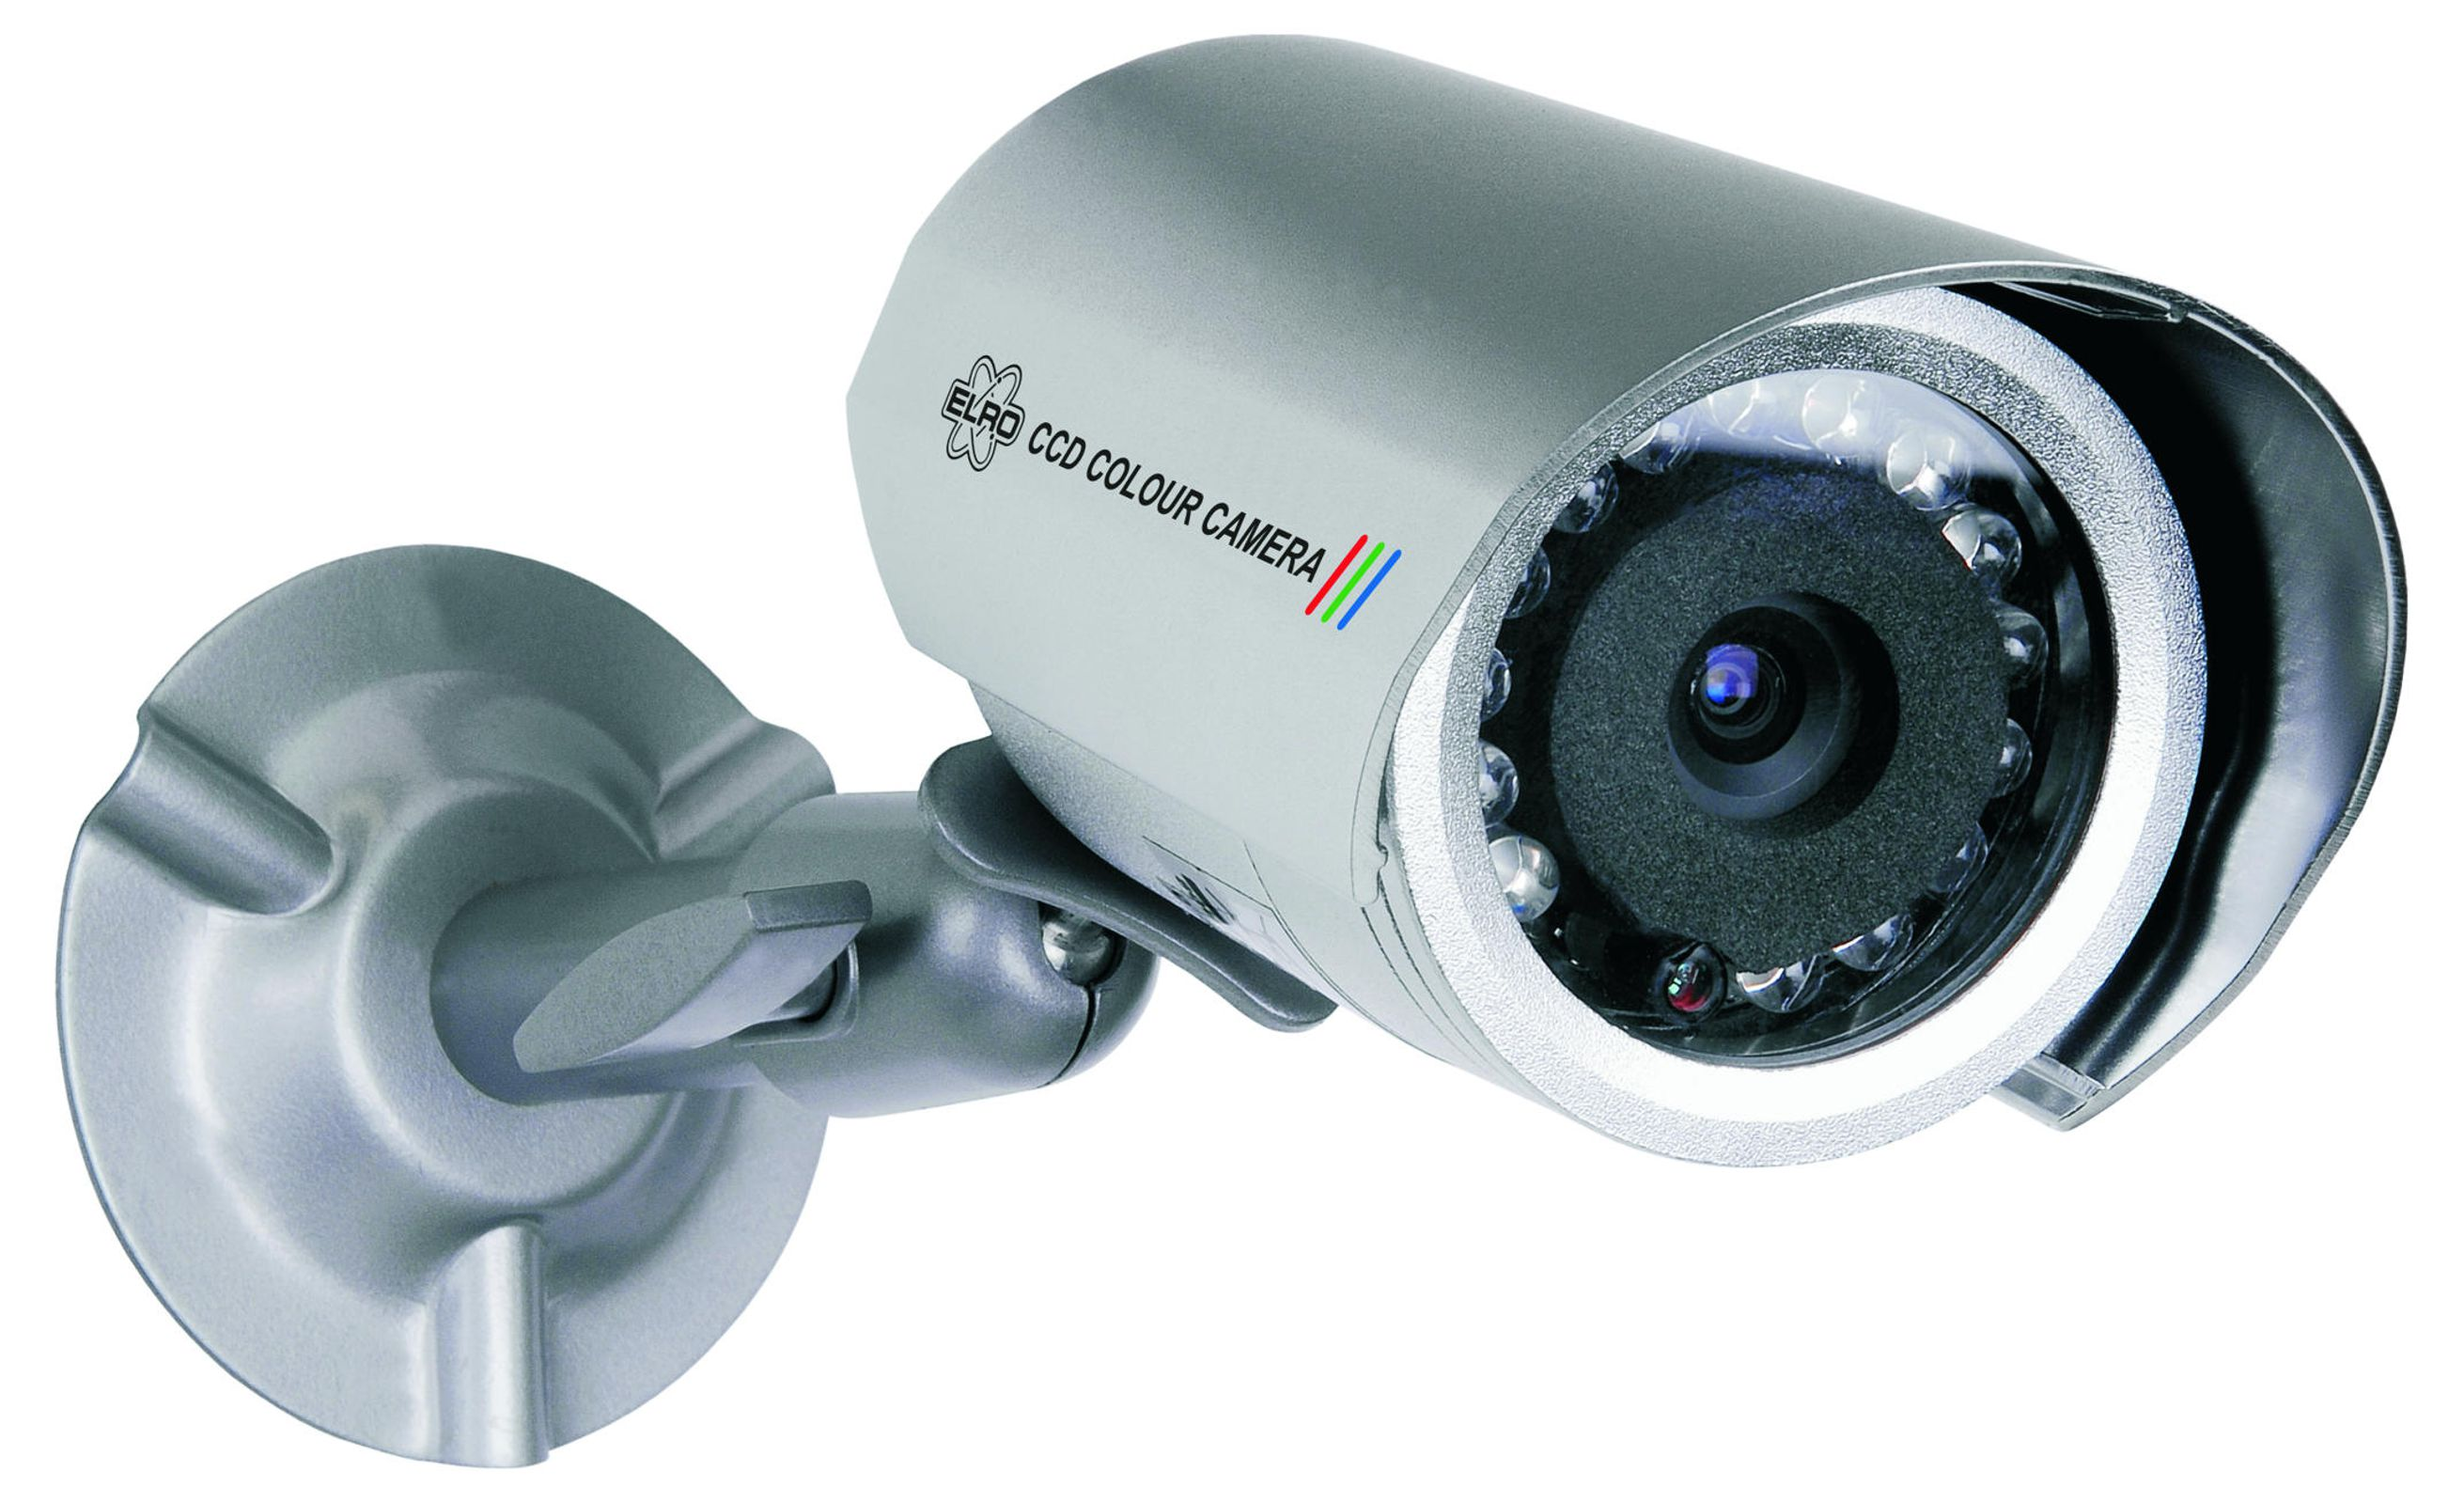 medium resolution of elro wired ccd colour security camera